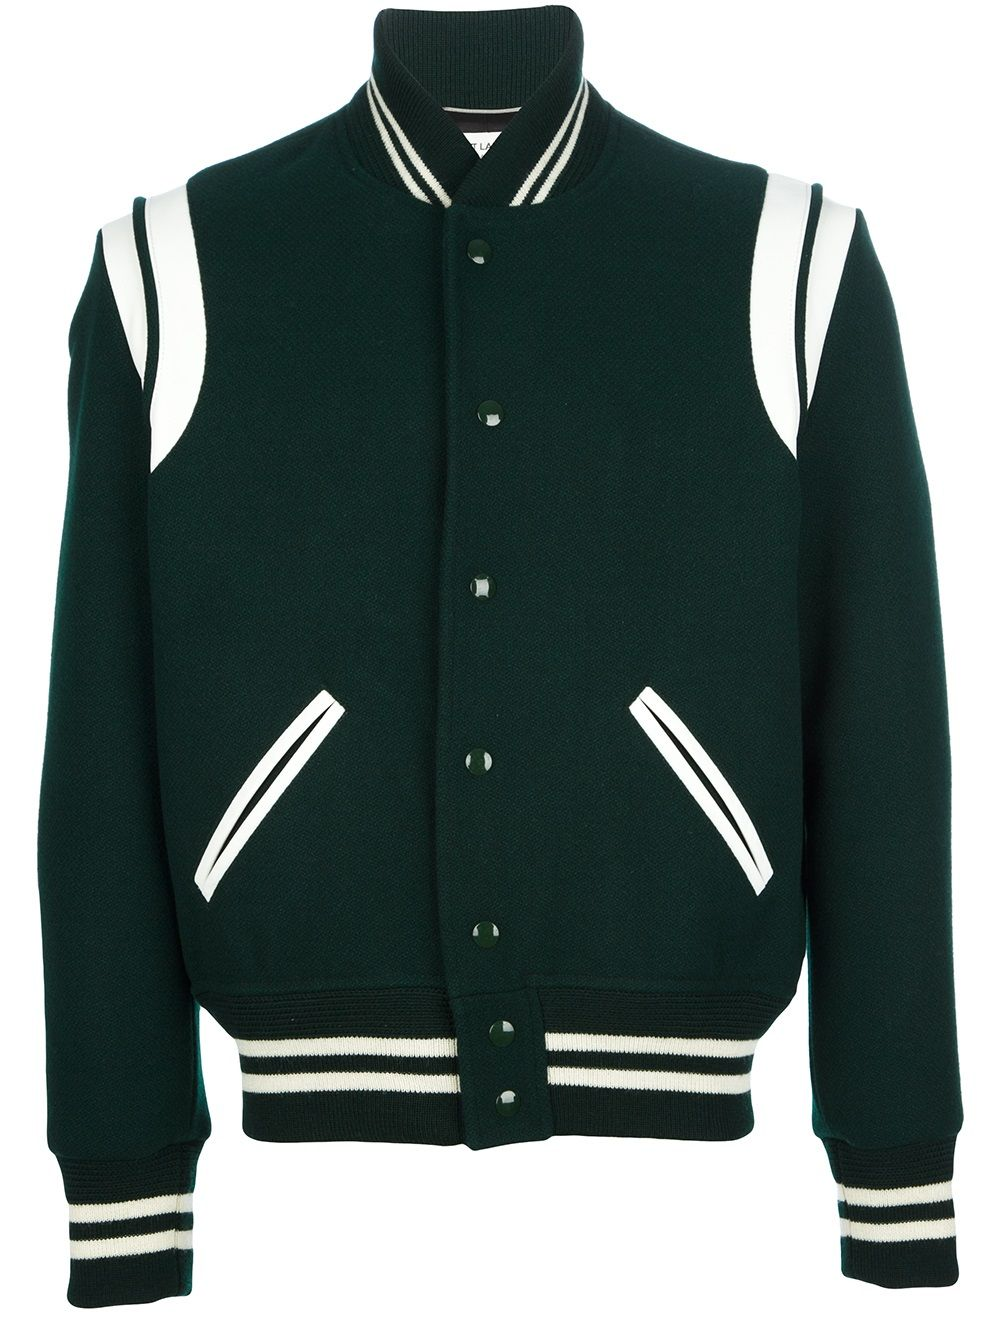 64975033c0e5 Saint Laurent Contrast Varsity Jacket